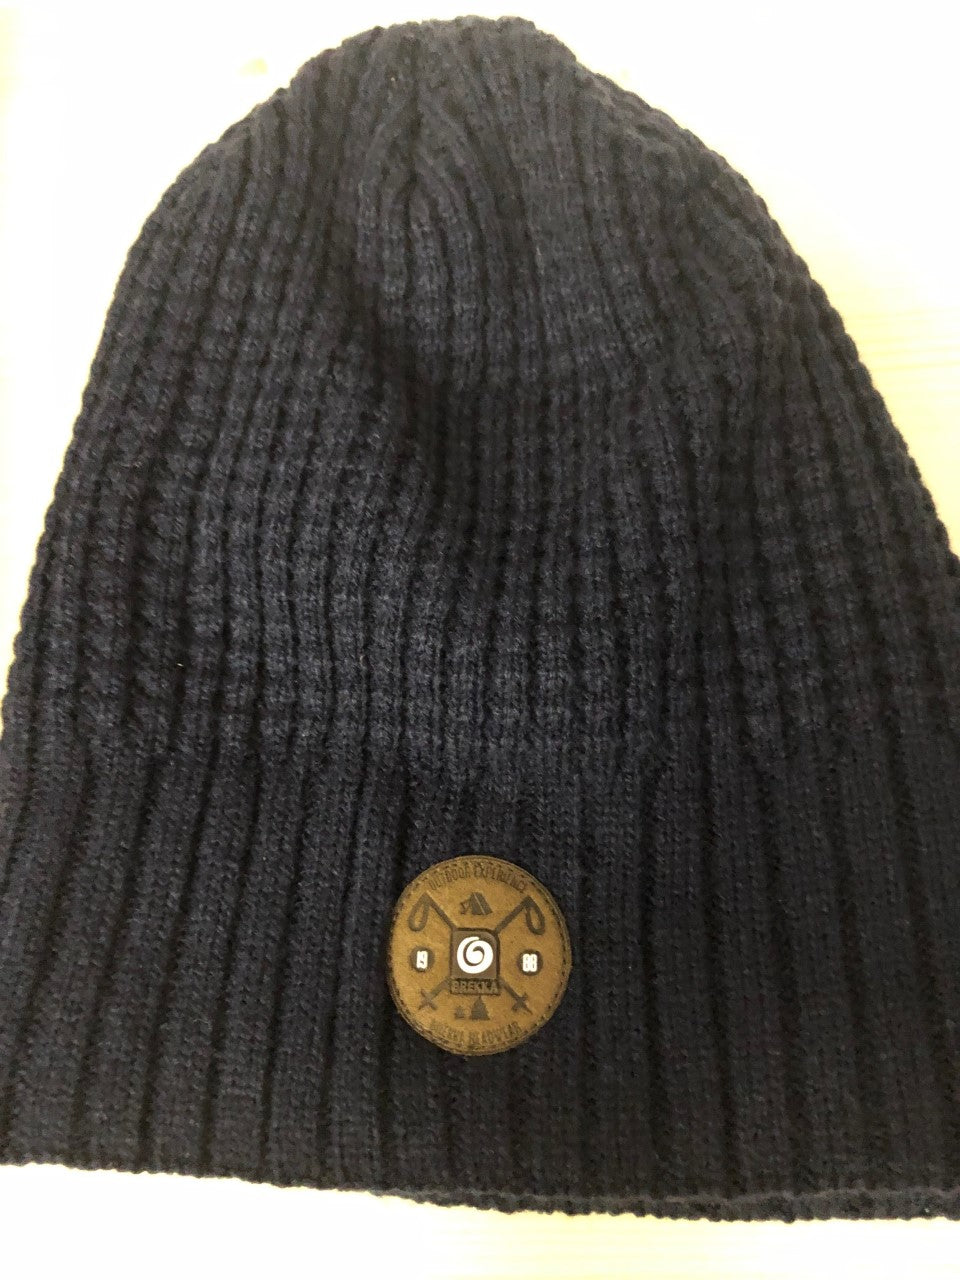 Brekka Navy Knit Hat - Lullaby's Boutique